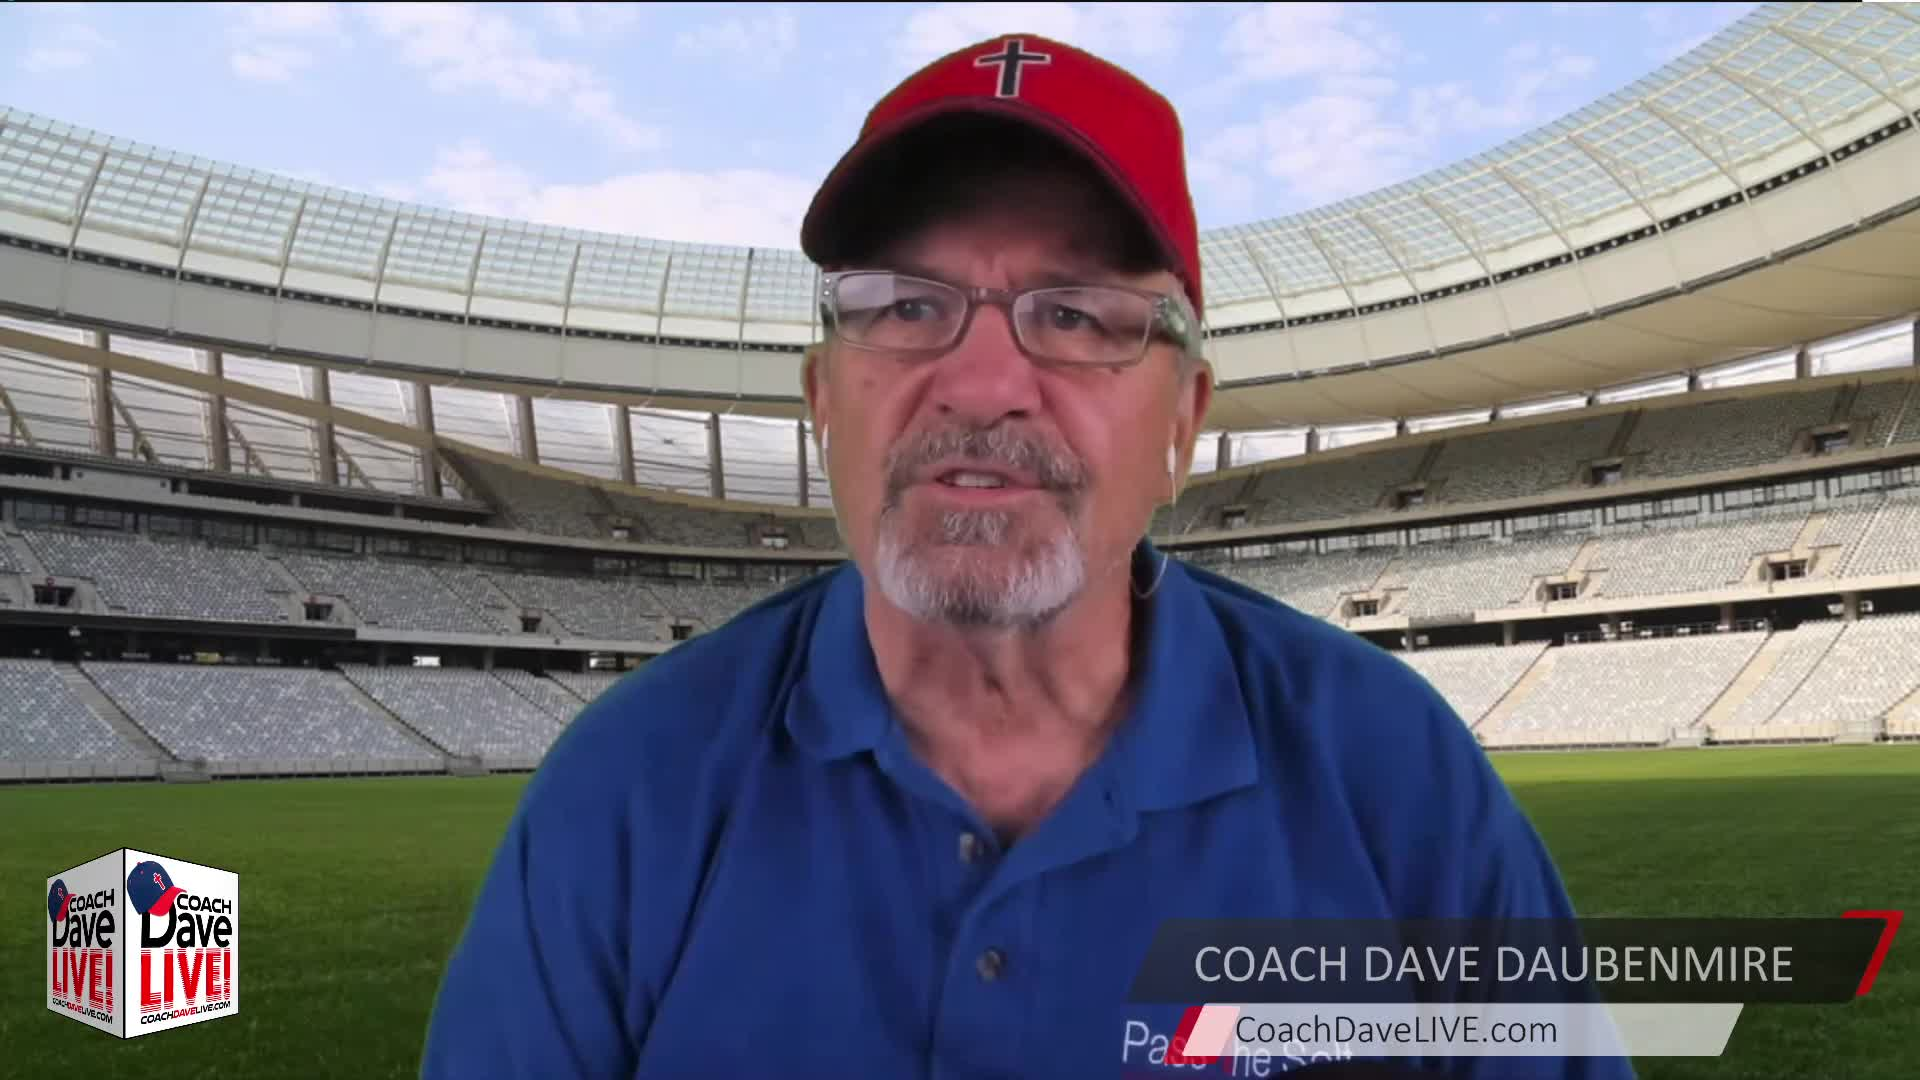 Coach Dave LIVE | 5-19-2021 | SPIRITUAL GIFTS AND HOW TO USE THEM - AUDIO ONLY